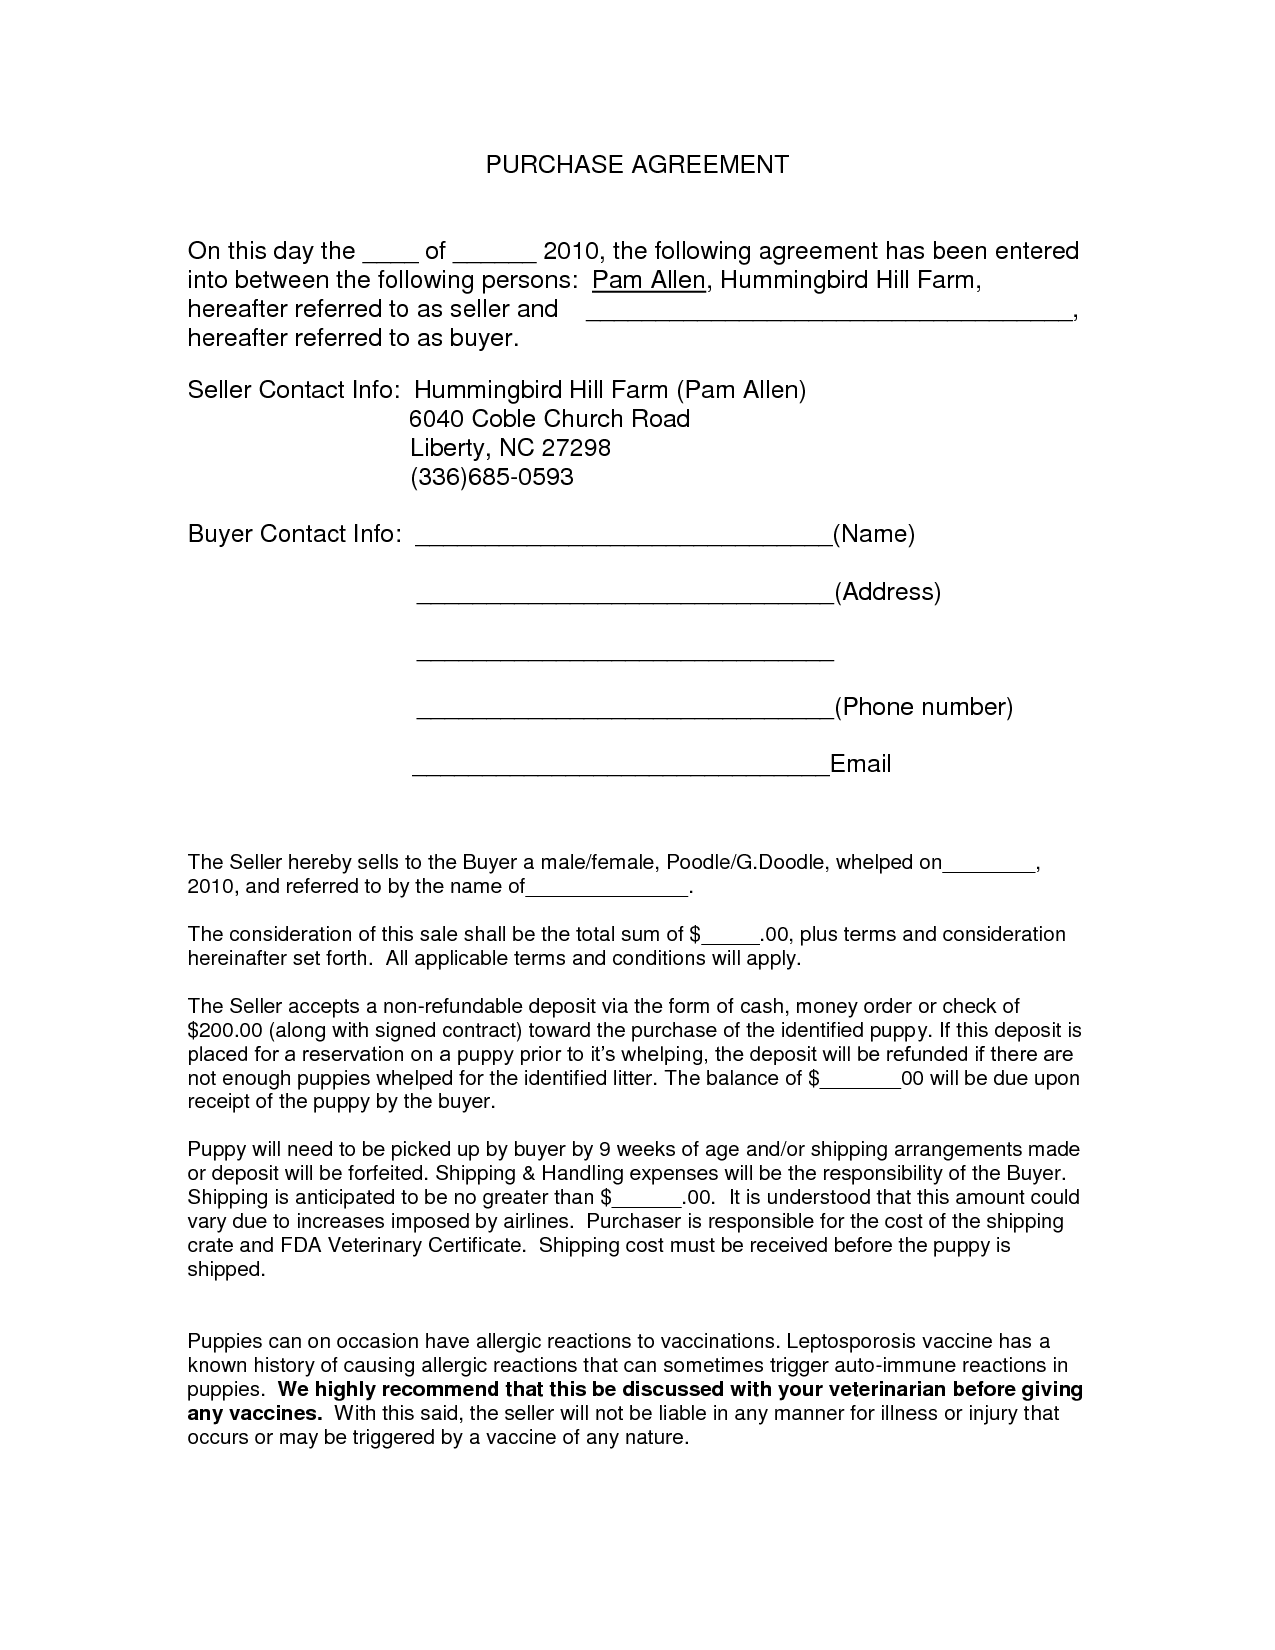 Auto Purchase Agreement Form   DOC By Nyy13910   Purchase Contract Template